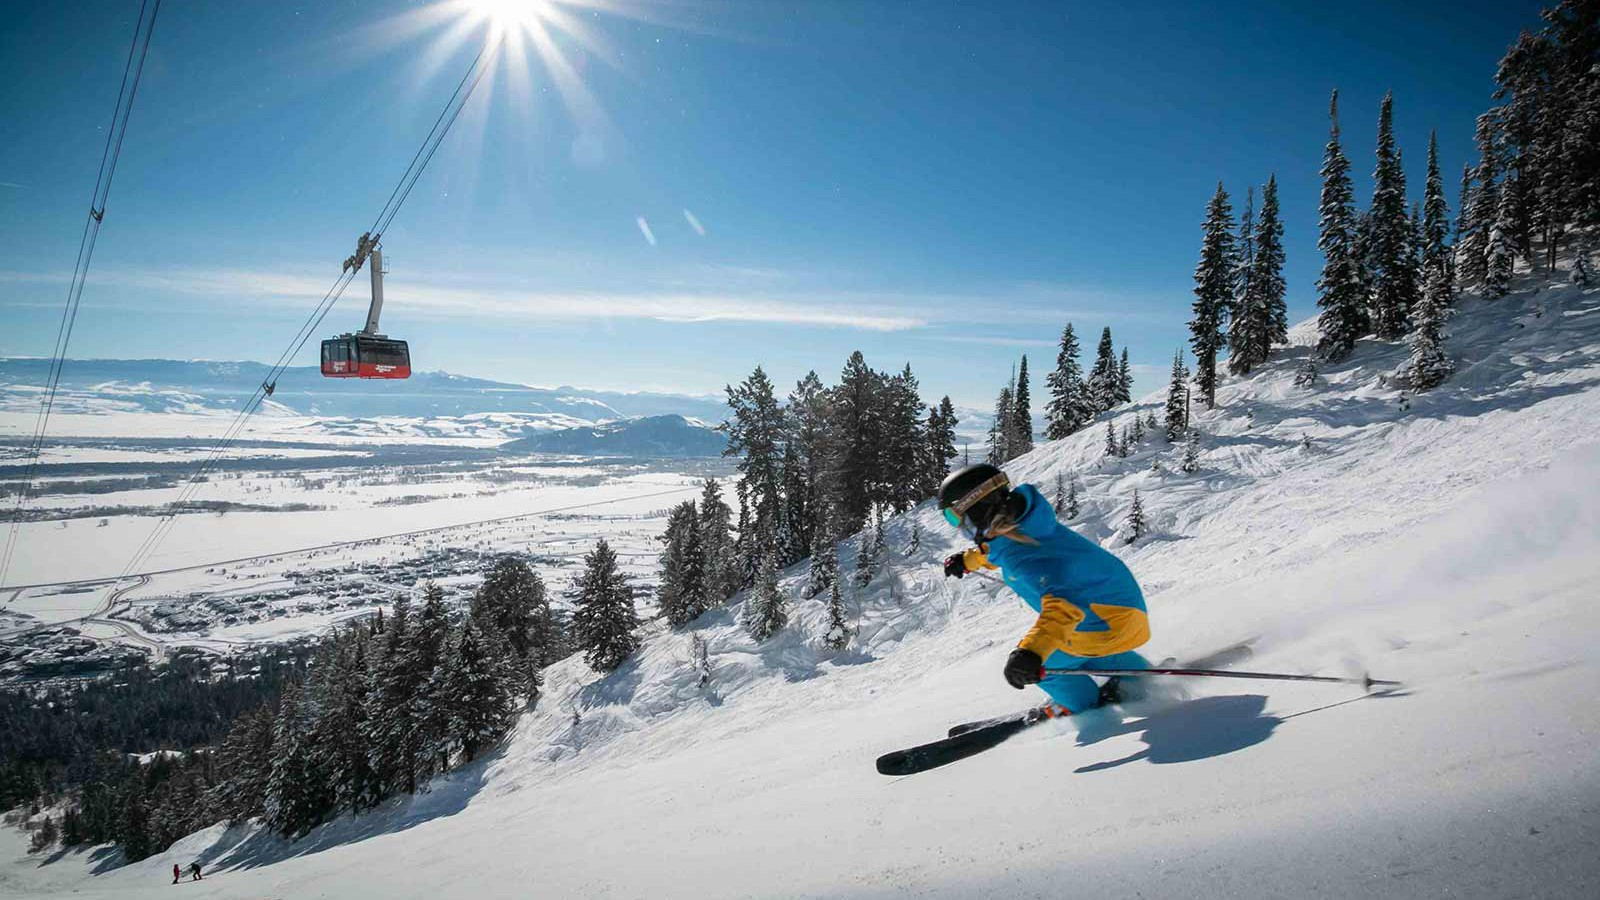 Jackson Hole Ski Resort, USA - Skiing, gondola and the sun